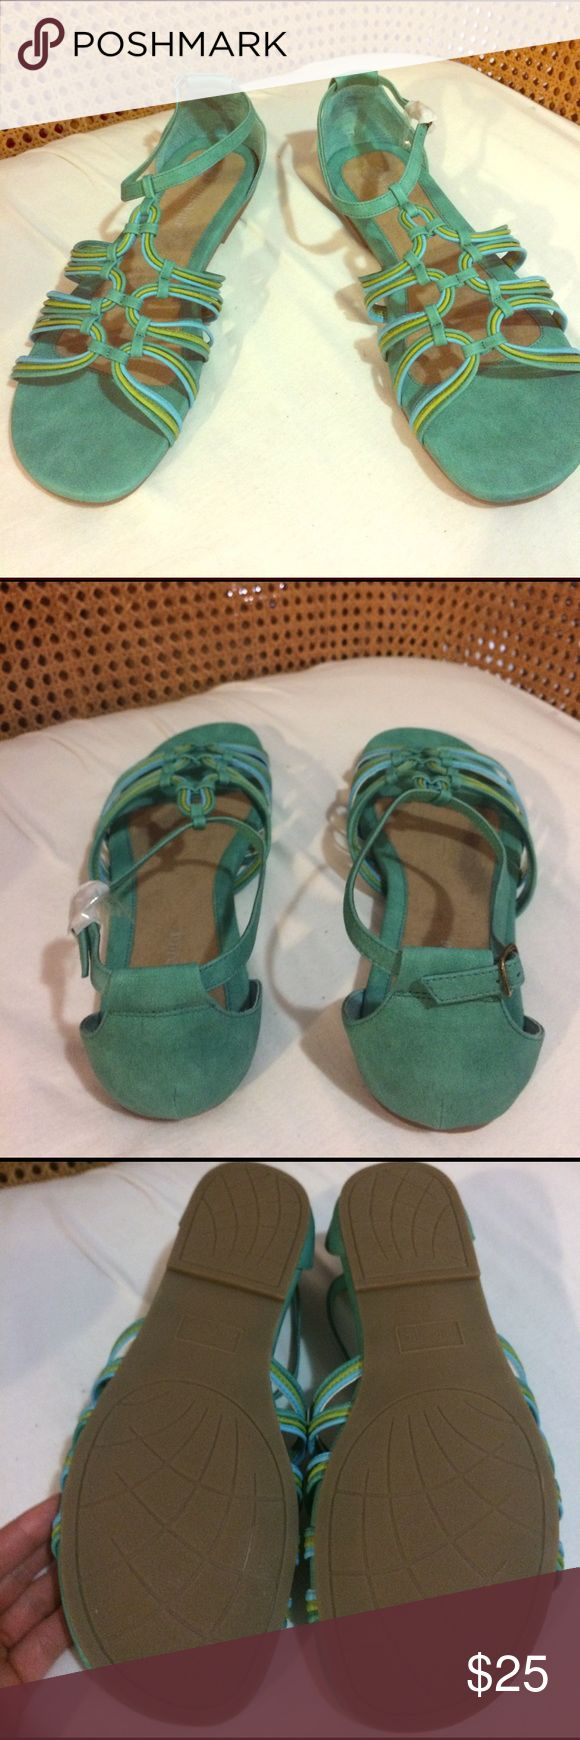 NEW in Box Bella Vita Teal Sandals Size 12 WW Brand New in box wrapped and never worn size 12 WW Bella Vita Shoes Sandals